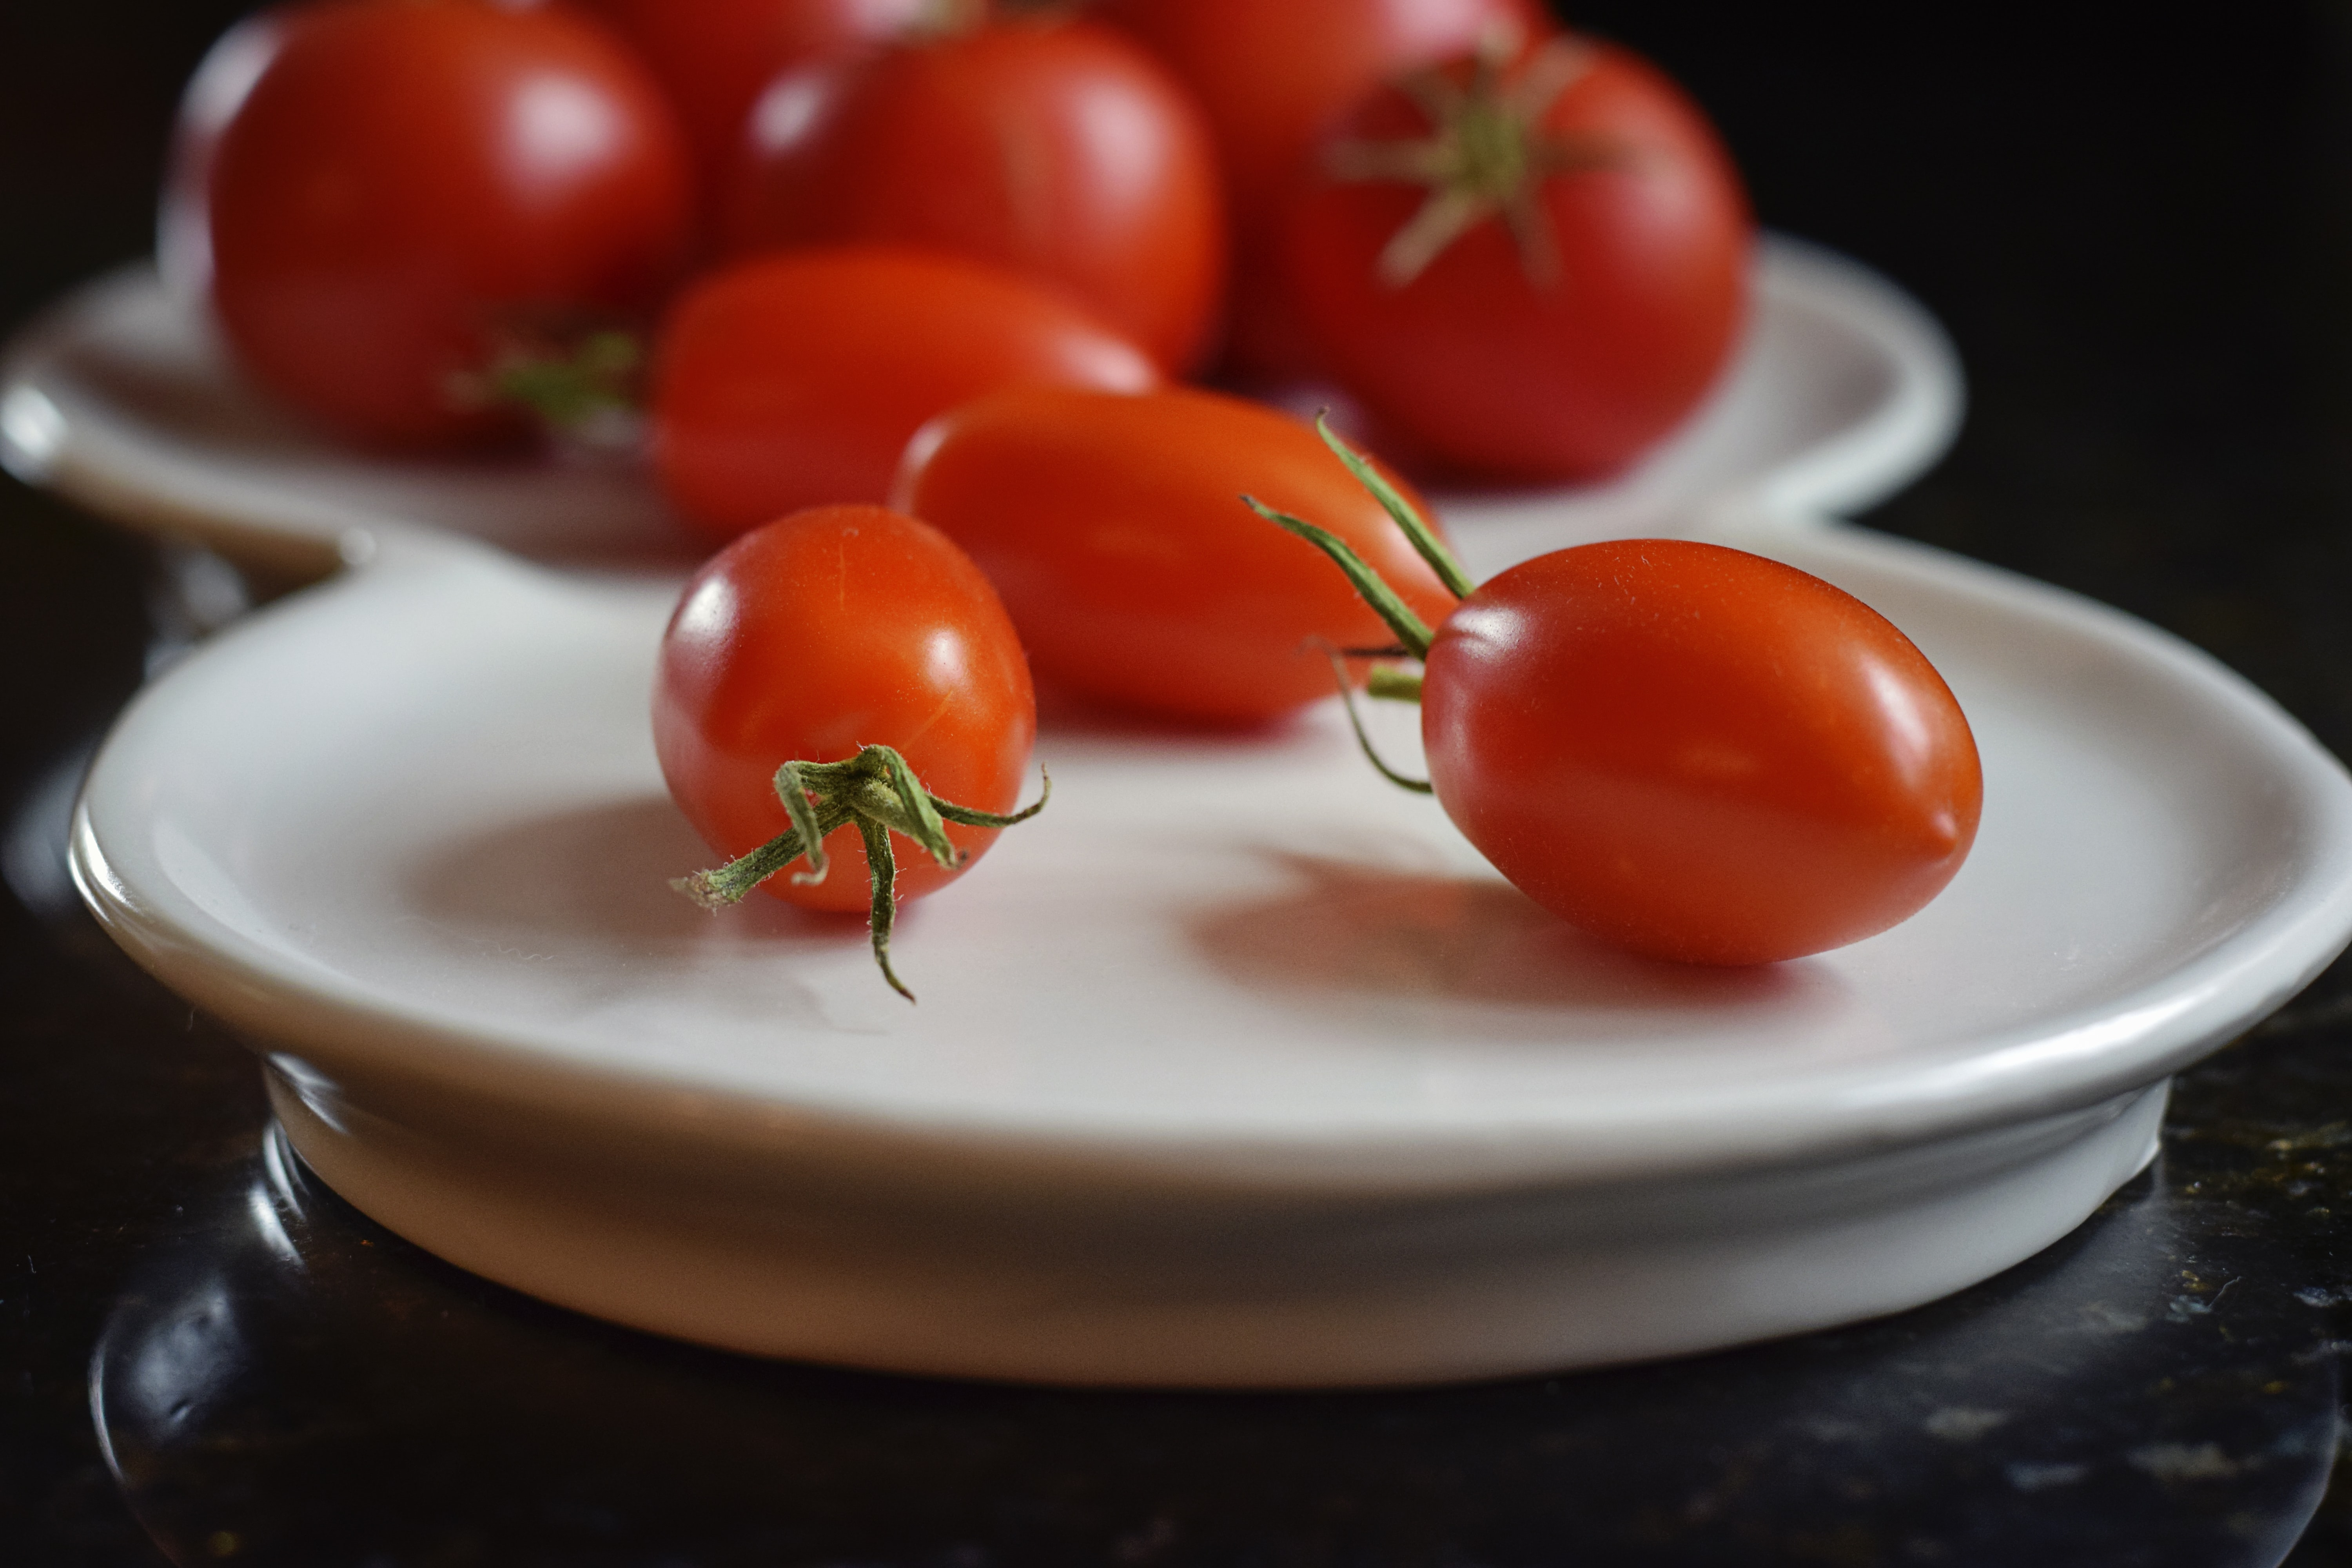 red tomatoes on white ceramic plate